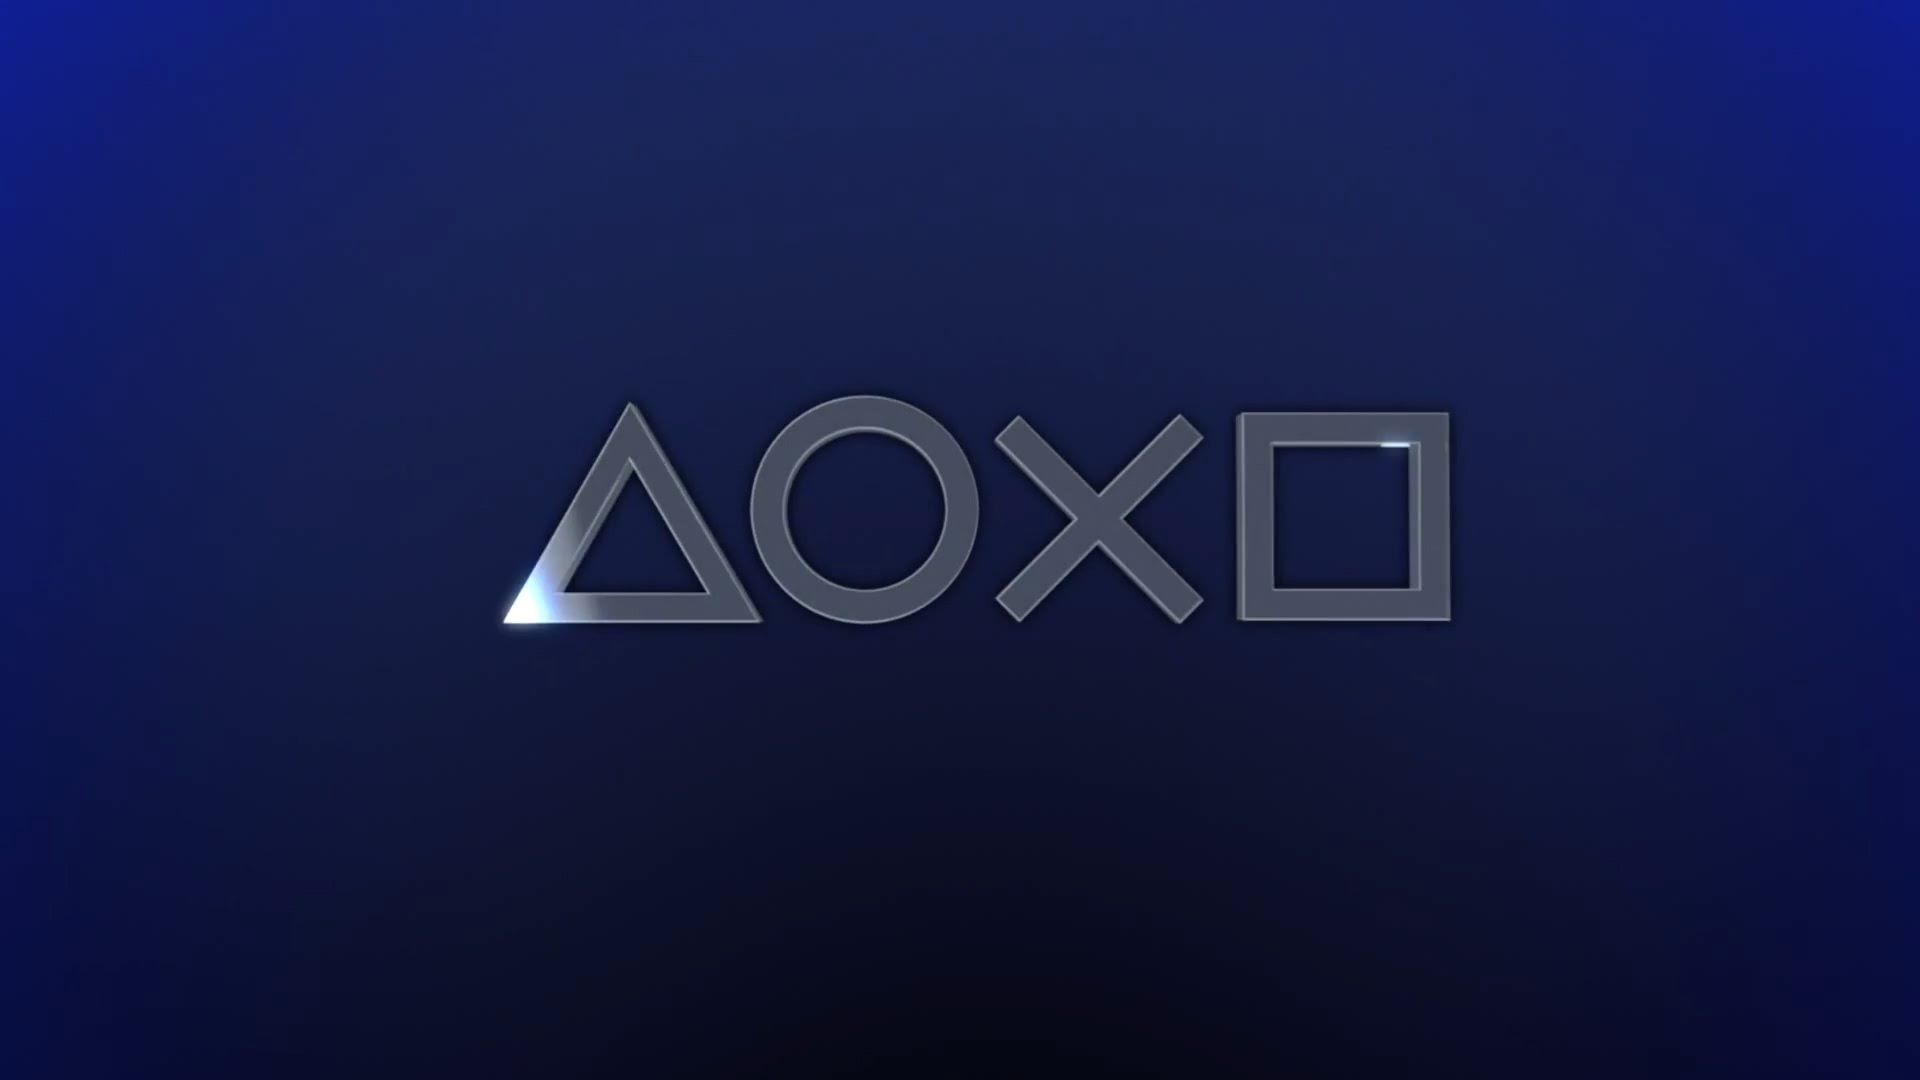 PlayStation 4 : The Best Place #4ThePlayers to Play